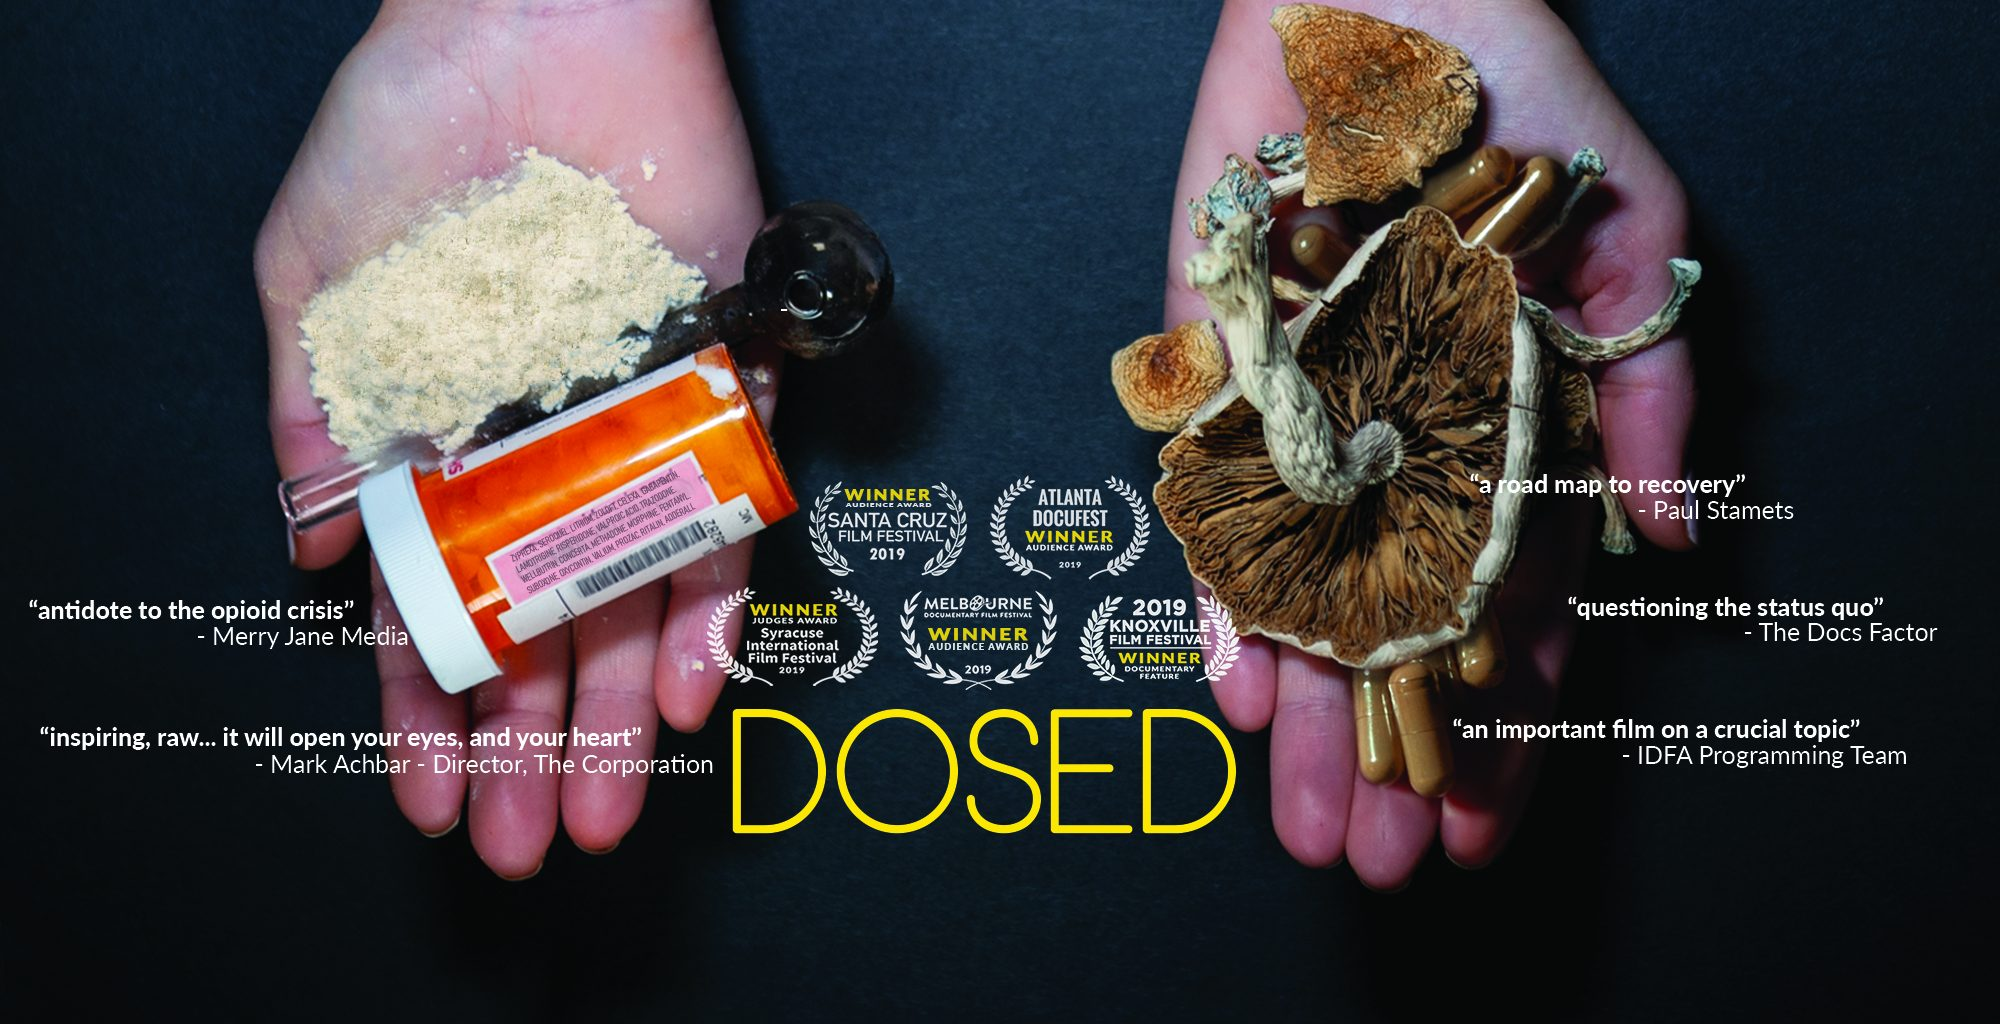 DOSED cover photo website